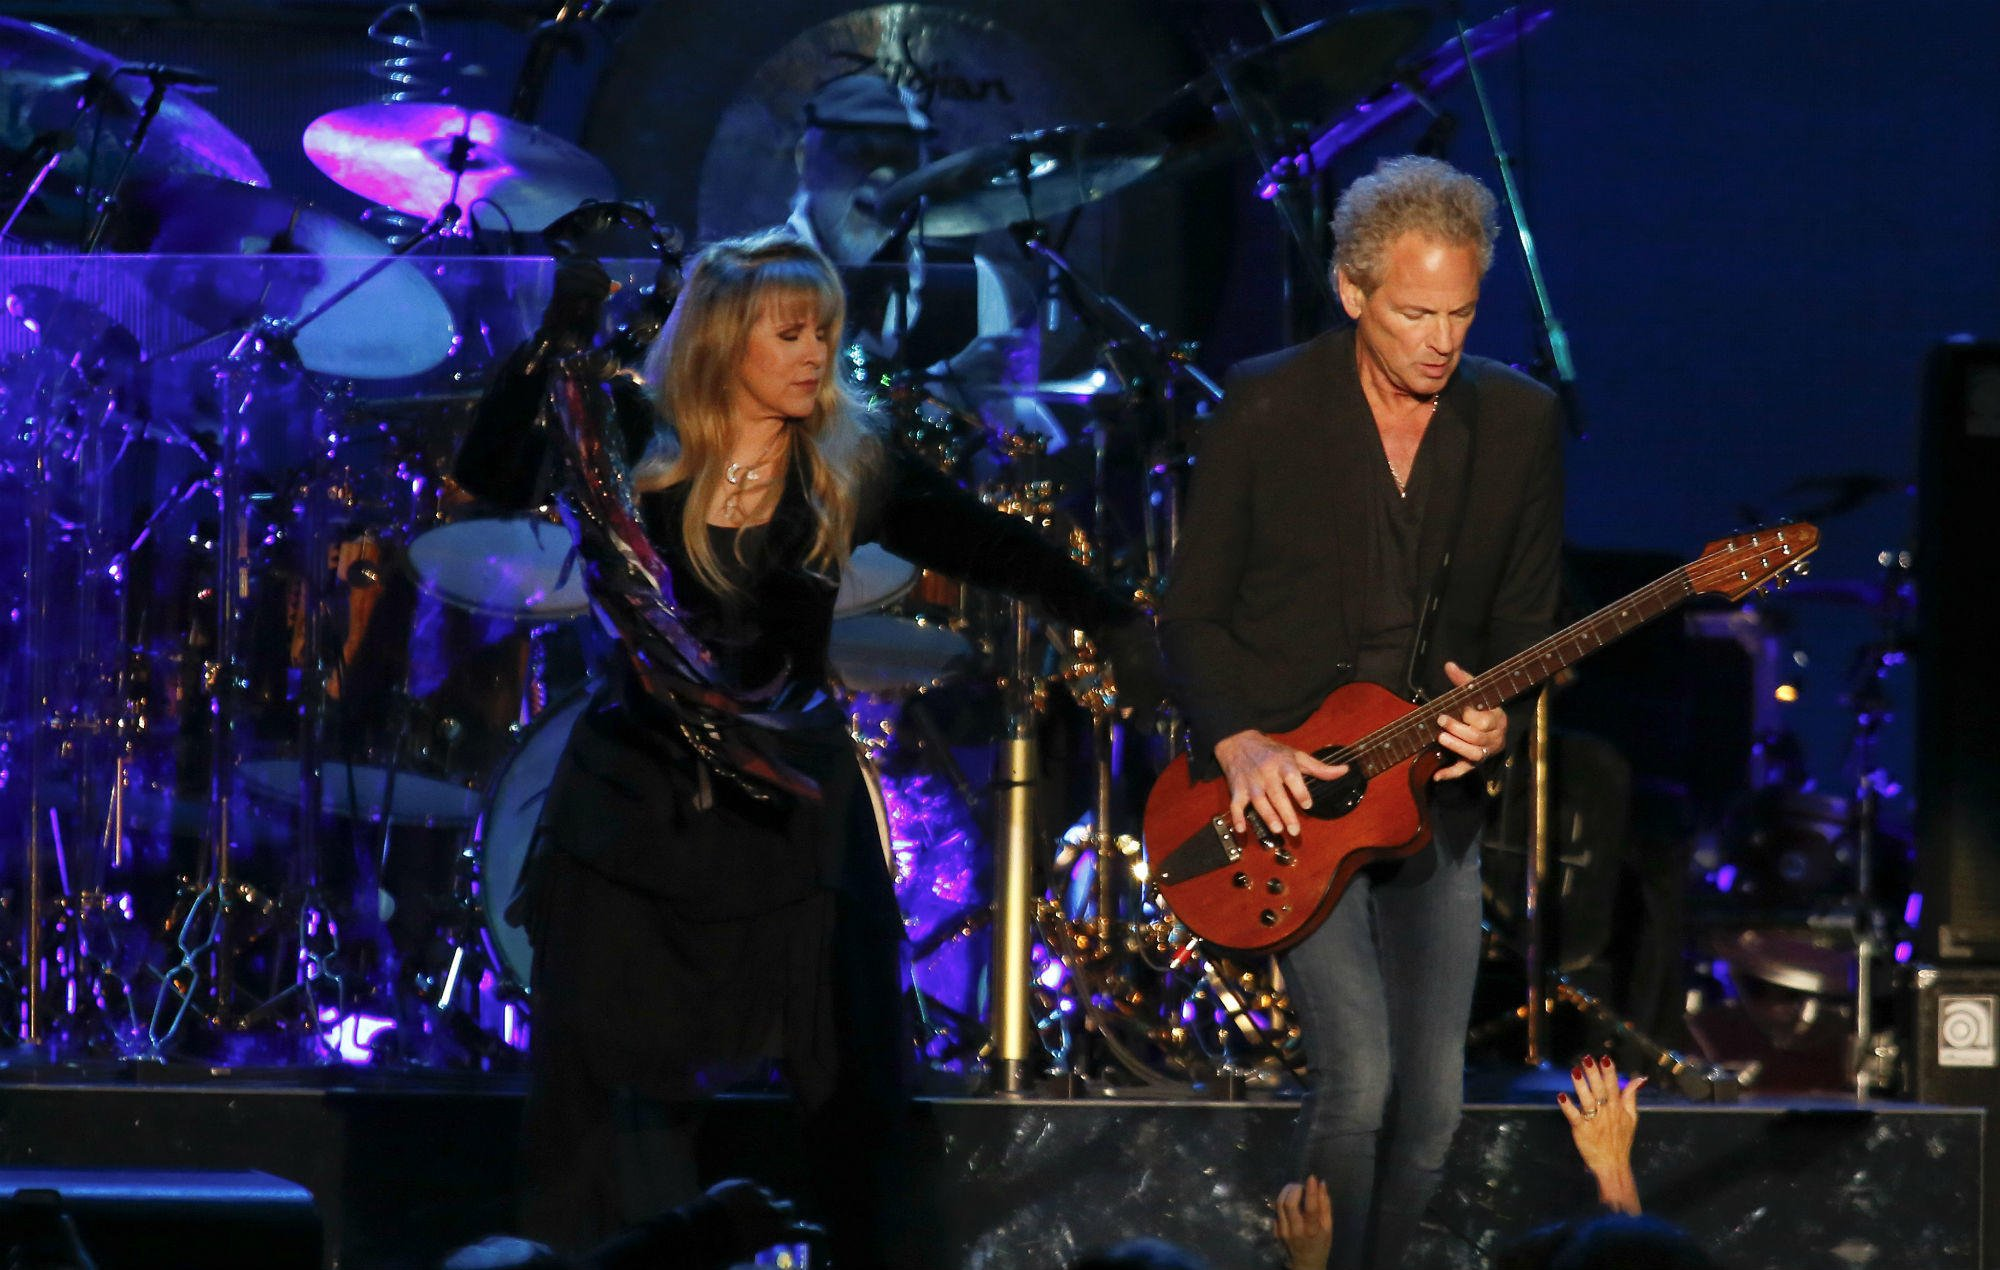 Lindsey Buckingham to kick off solo shows only days after Fleetwood Mac begin world tour https://t.co/HMvFWJsBuk https://t.co/YI59wTlhno